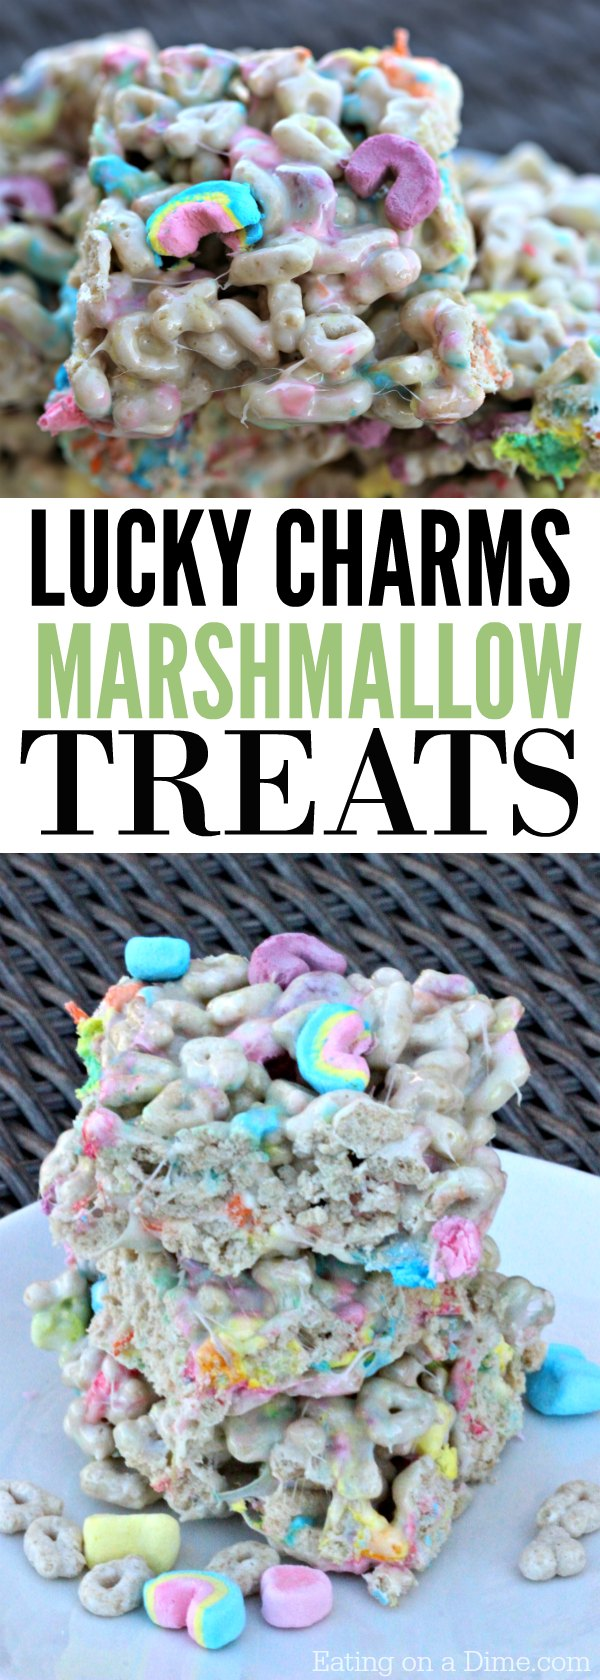 Kid Friendly St. Patrick's Day Treat - Lucky Charms Marshmallow Treats Recipe - This is a quick and easy treat using the favorite Lucky Charms Cereal.